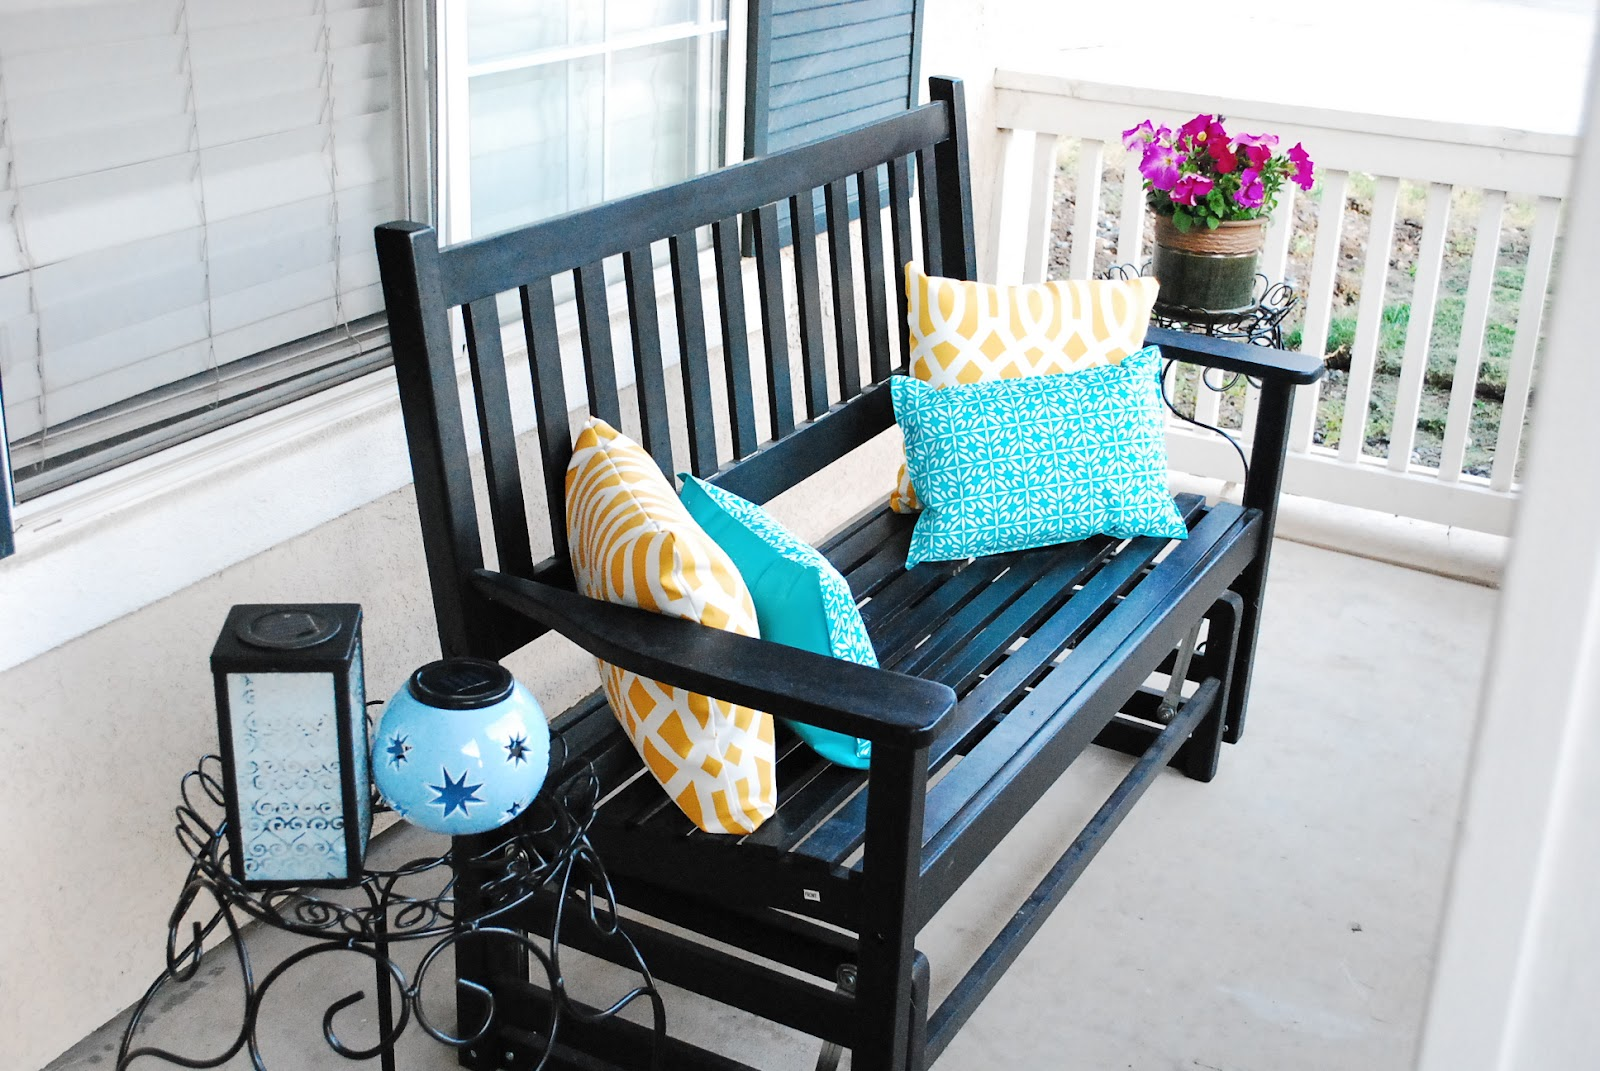 Patio Makeover On a Budget on Patio Makeovers On A Budget id=60630